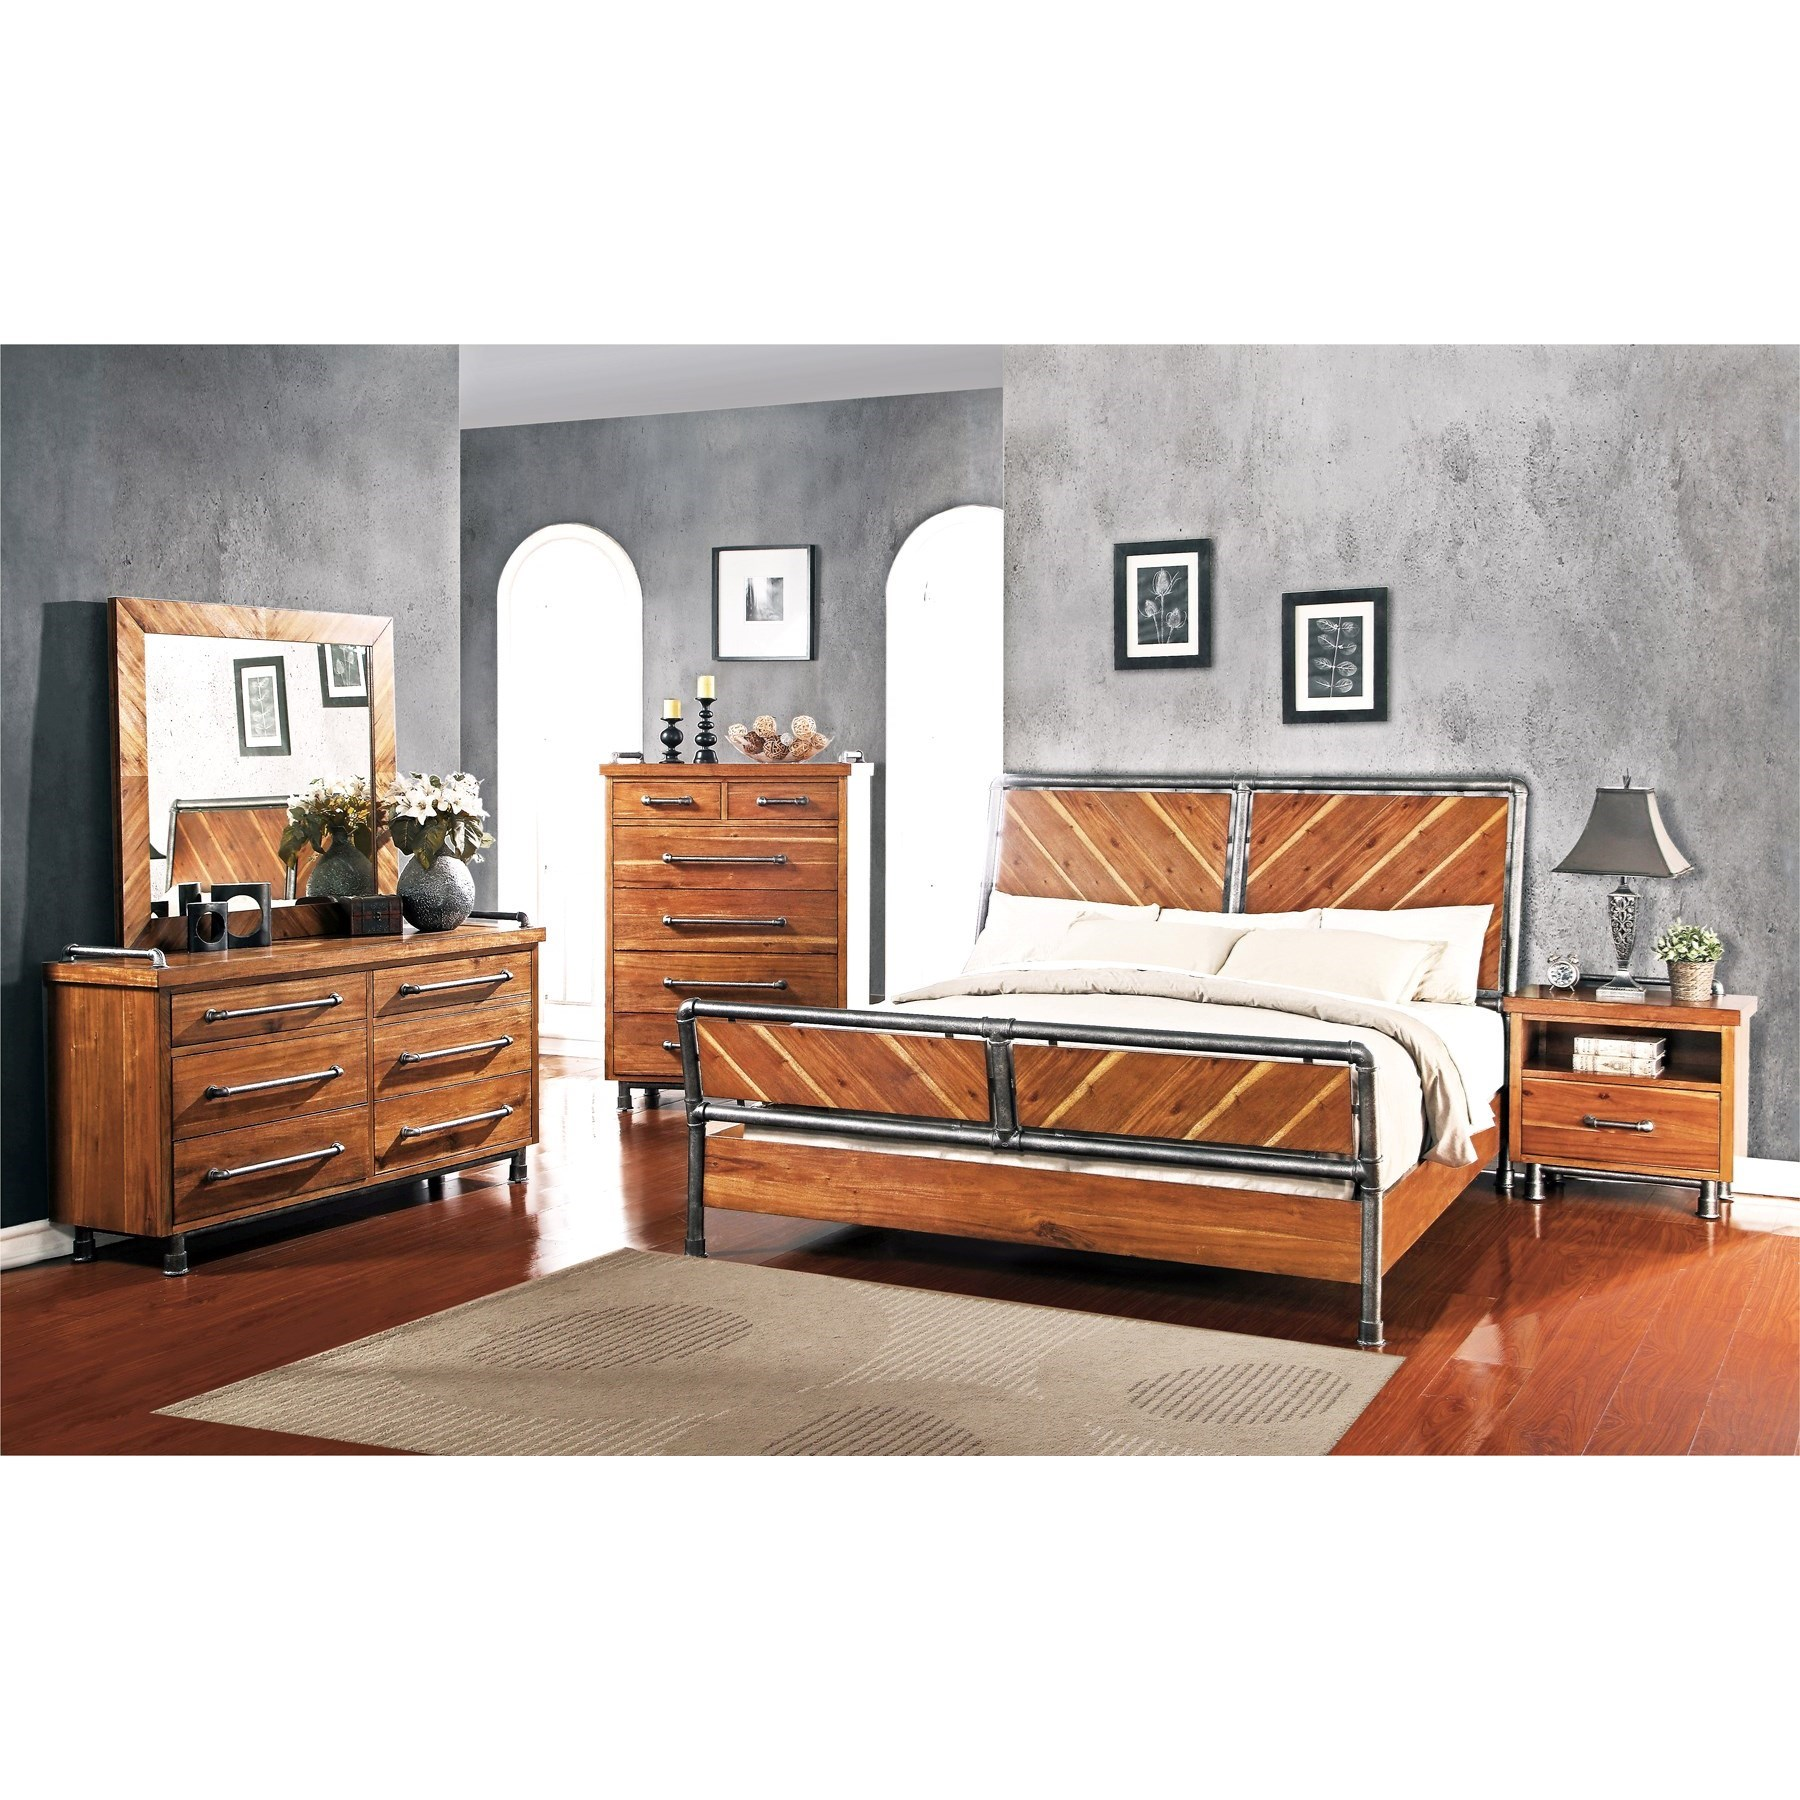 Legends Furniture Steampunk Collection Queen Bedroom Group - Item Number:  ZSPK Q Bedroom Group